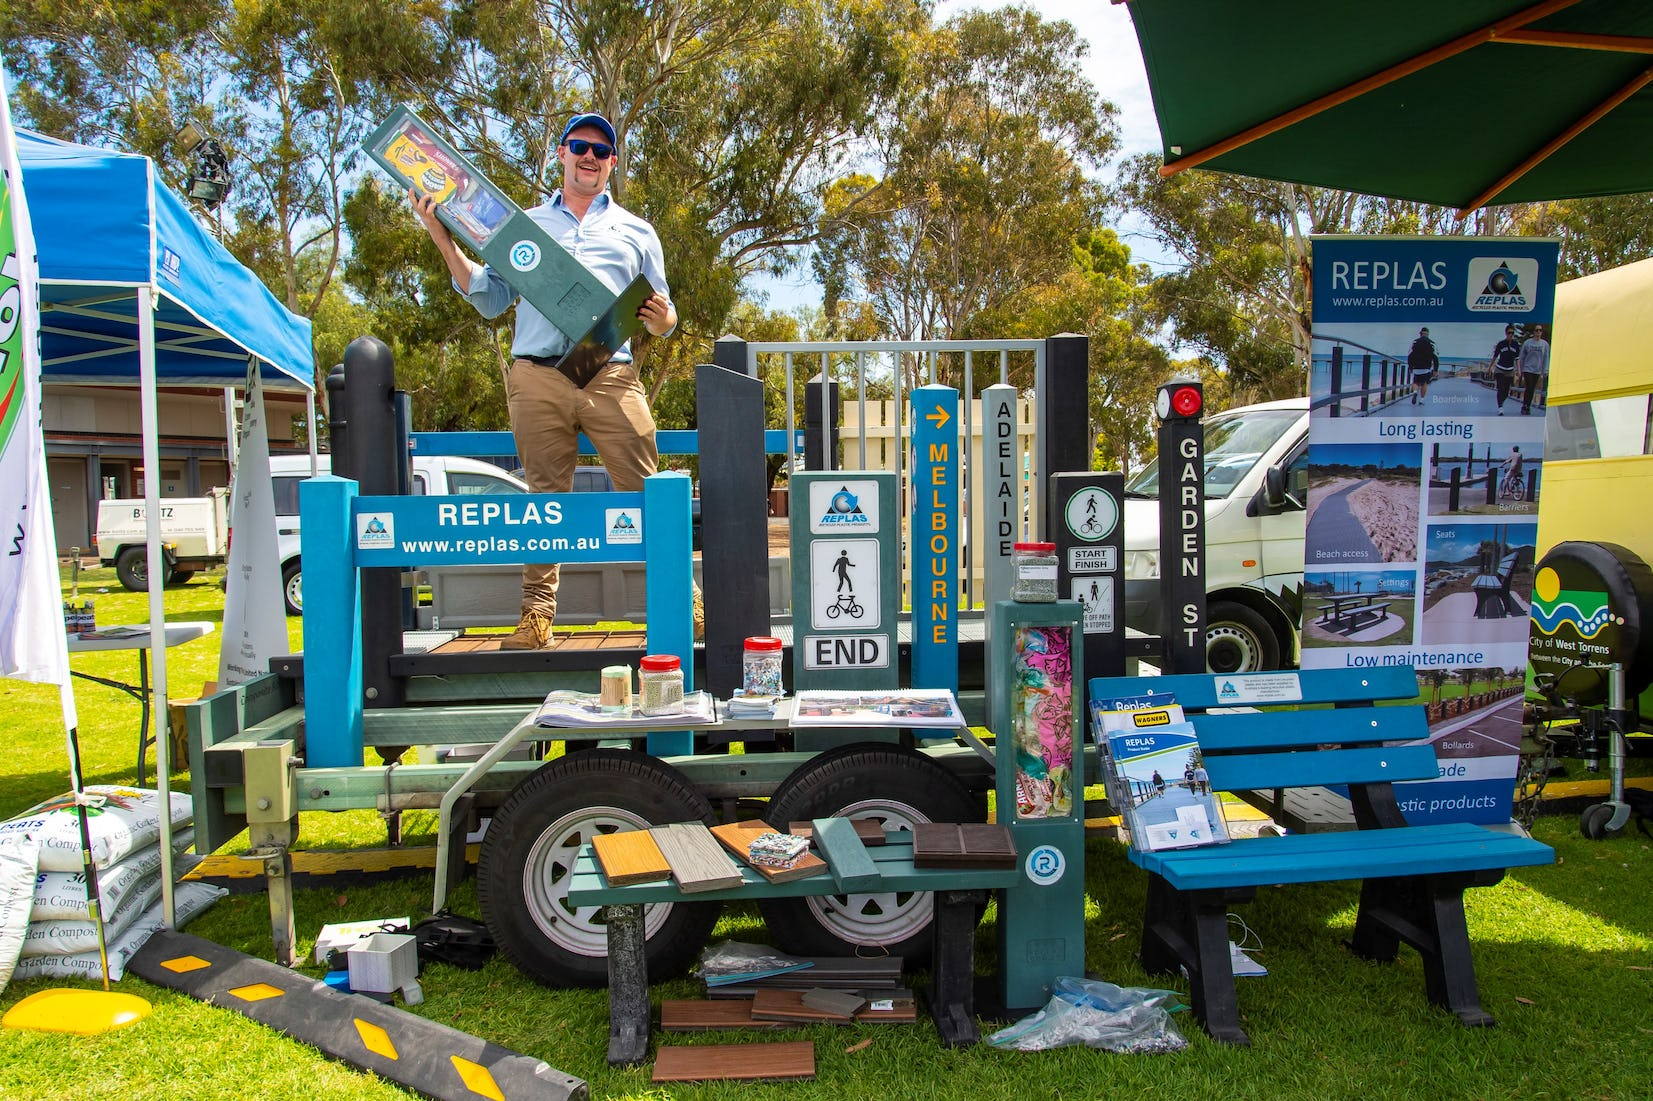 Photographs courtesy of the City of West Torrens and John Kruger.